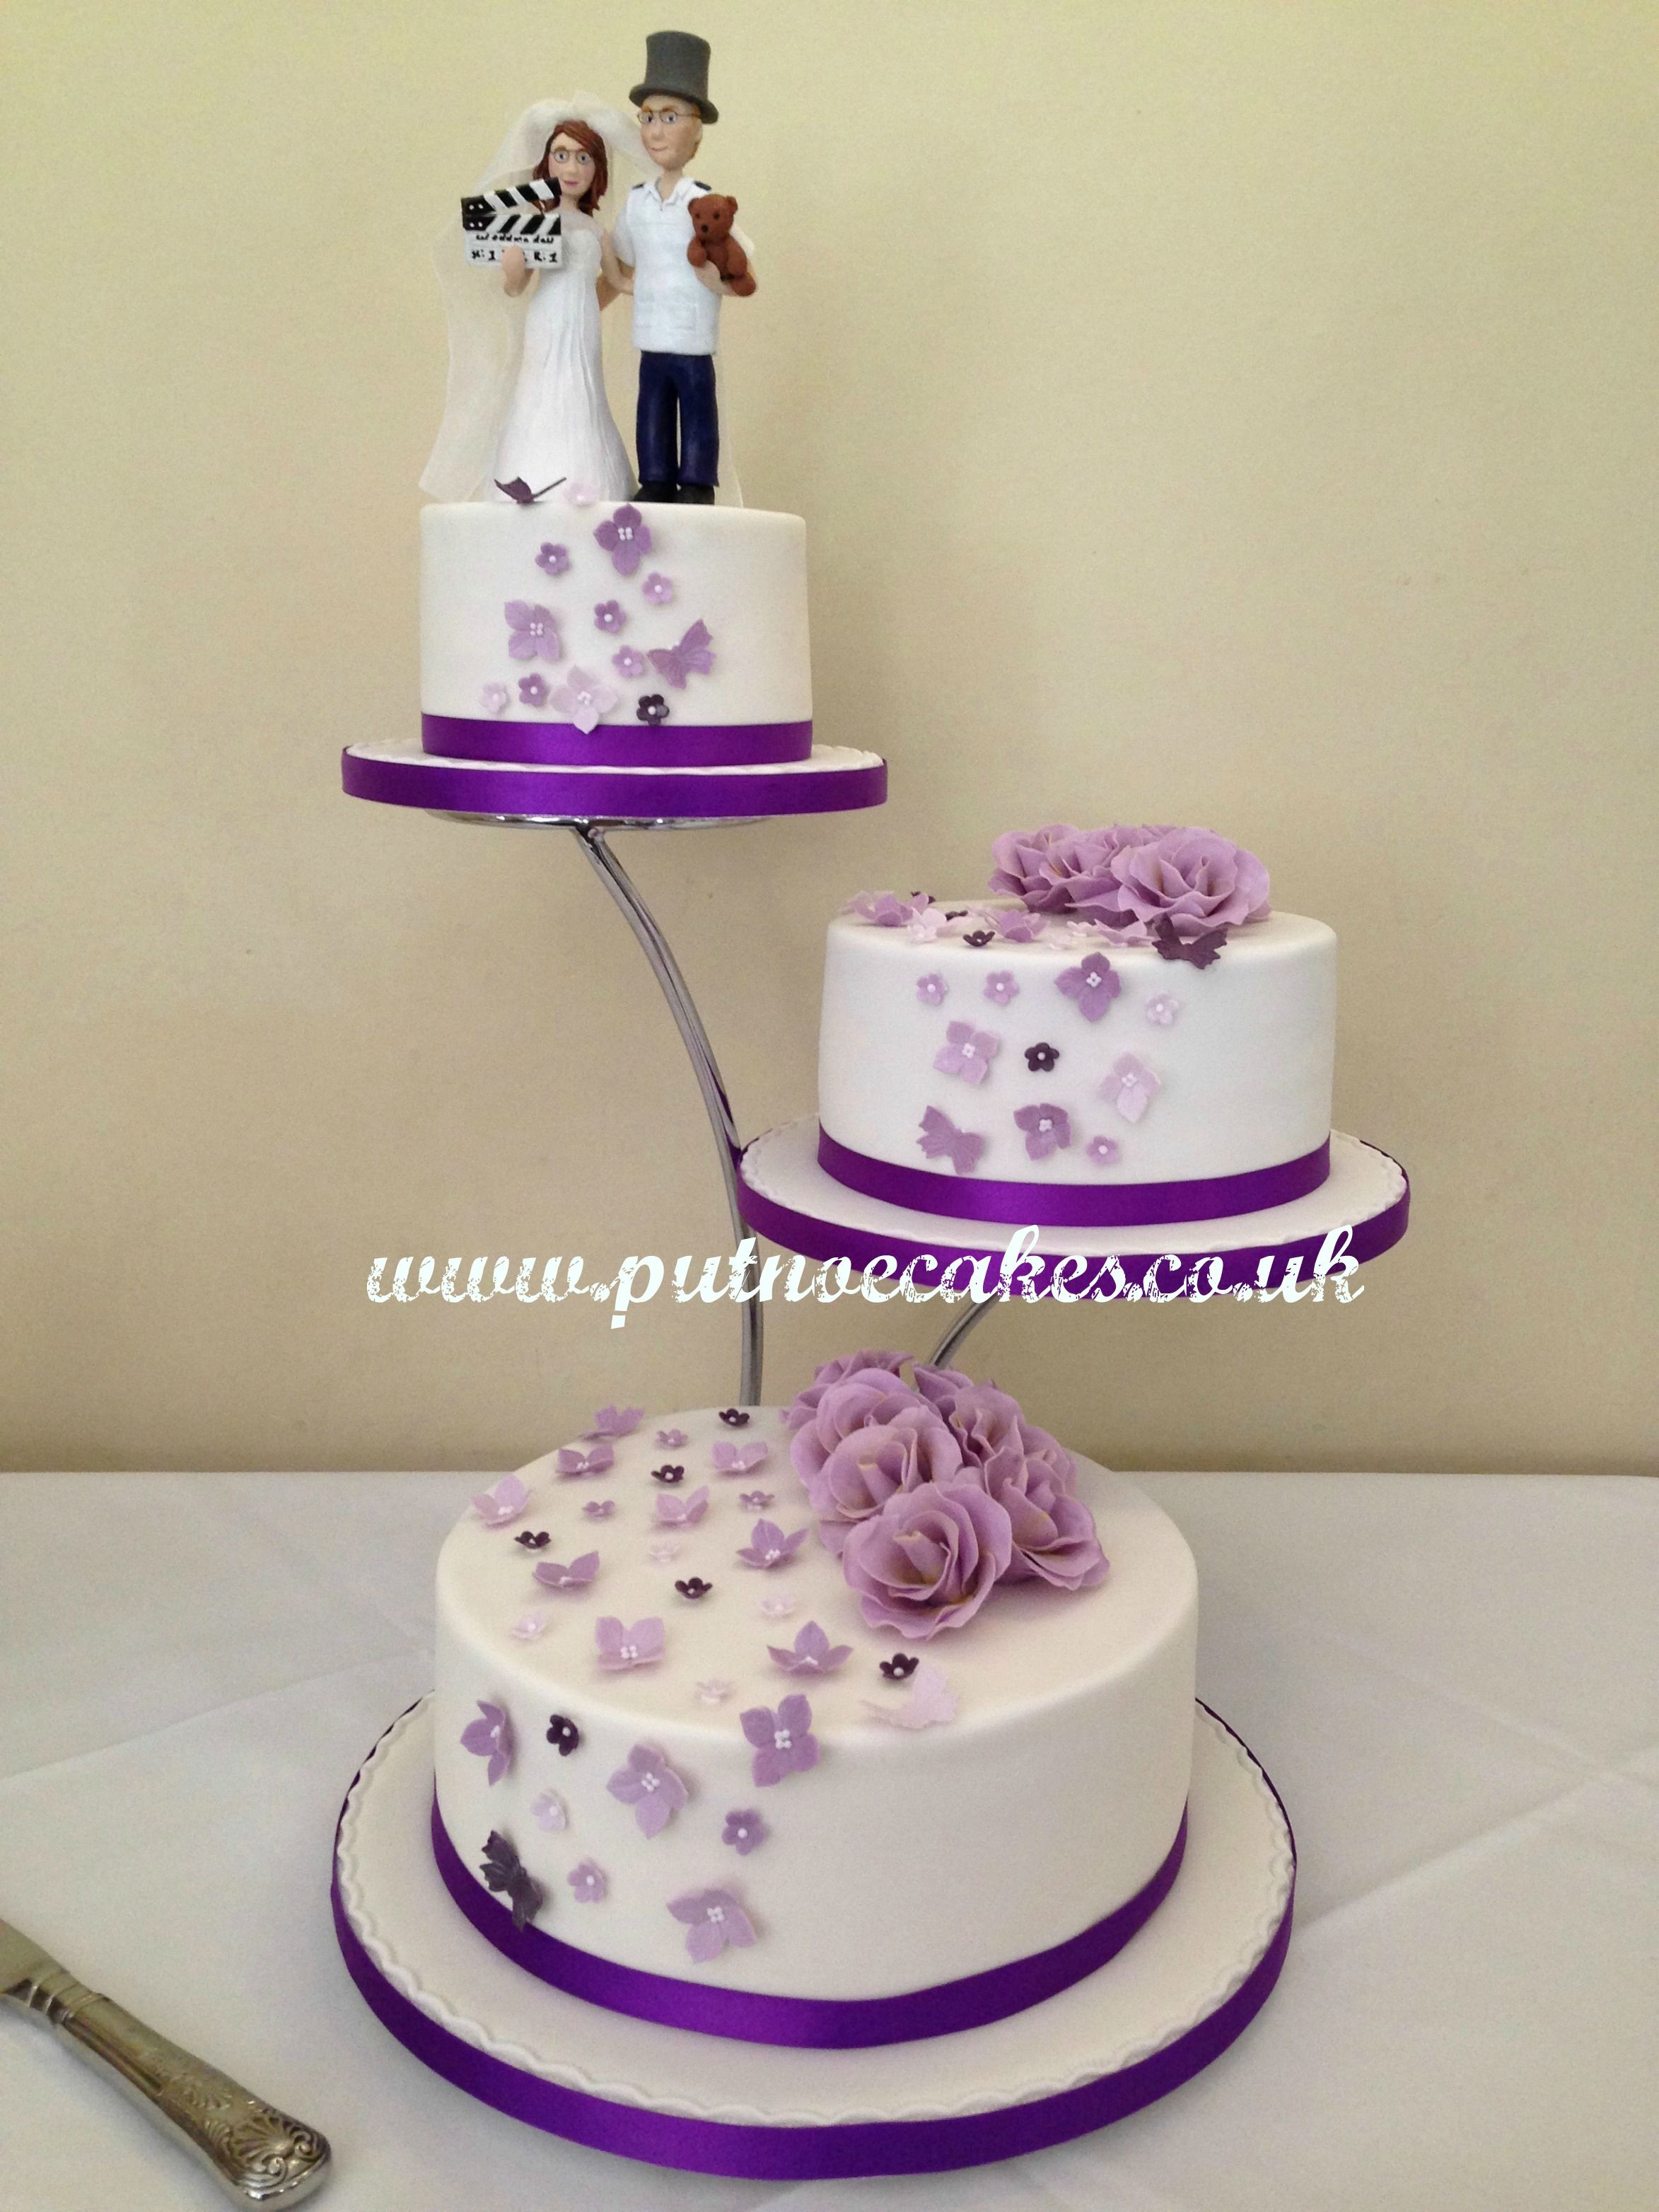 Separator Stand 3 Tier Wedding Cake Bride And Groom Topper Was Made By A Friend